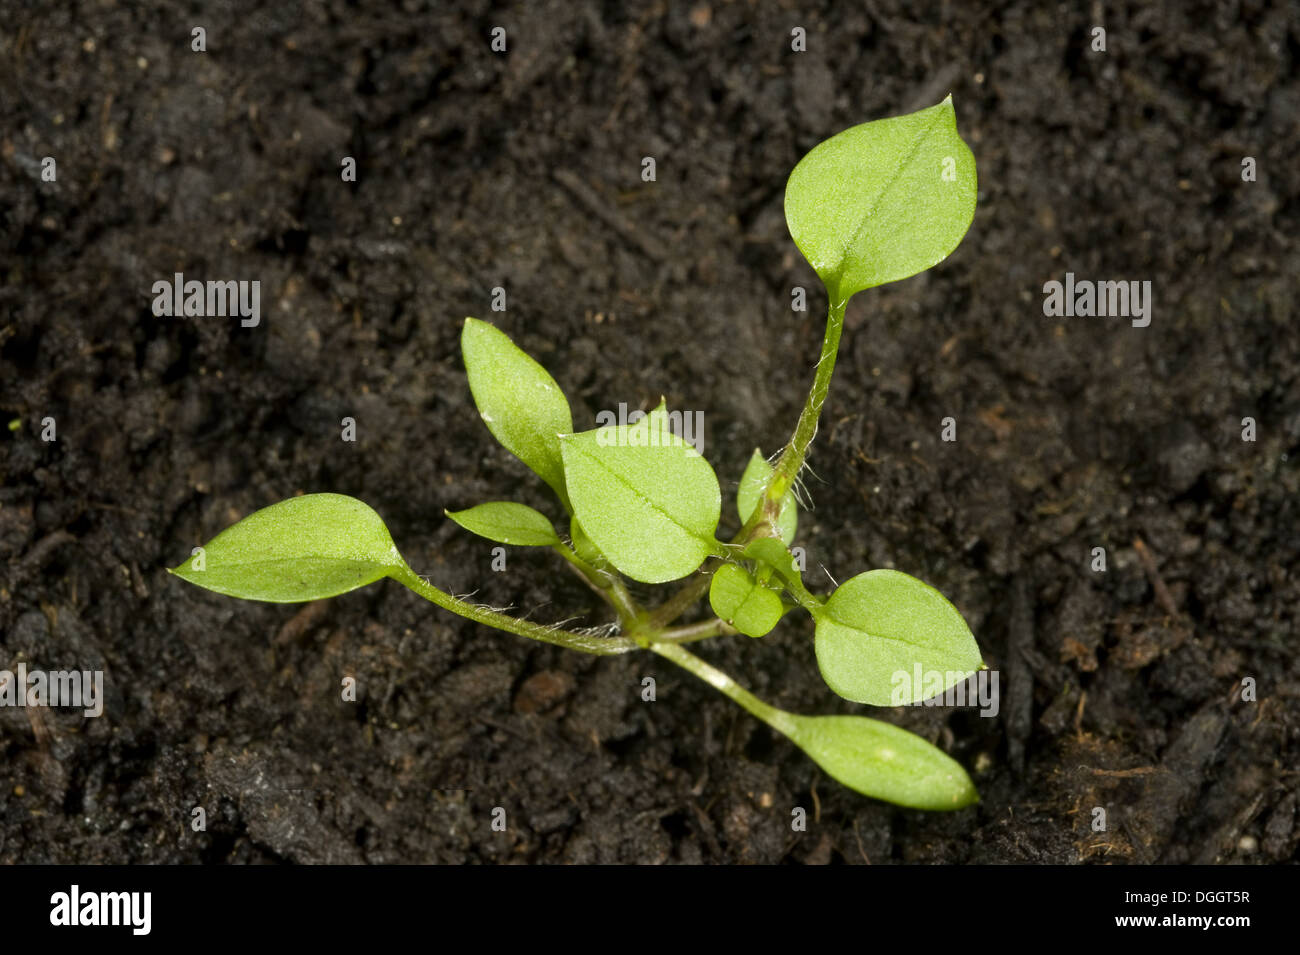 Seedling developing into a young plant of chickweed, Stellaria media, an annual agricultural and garden weed Stock Photo